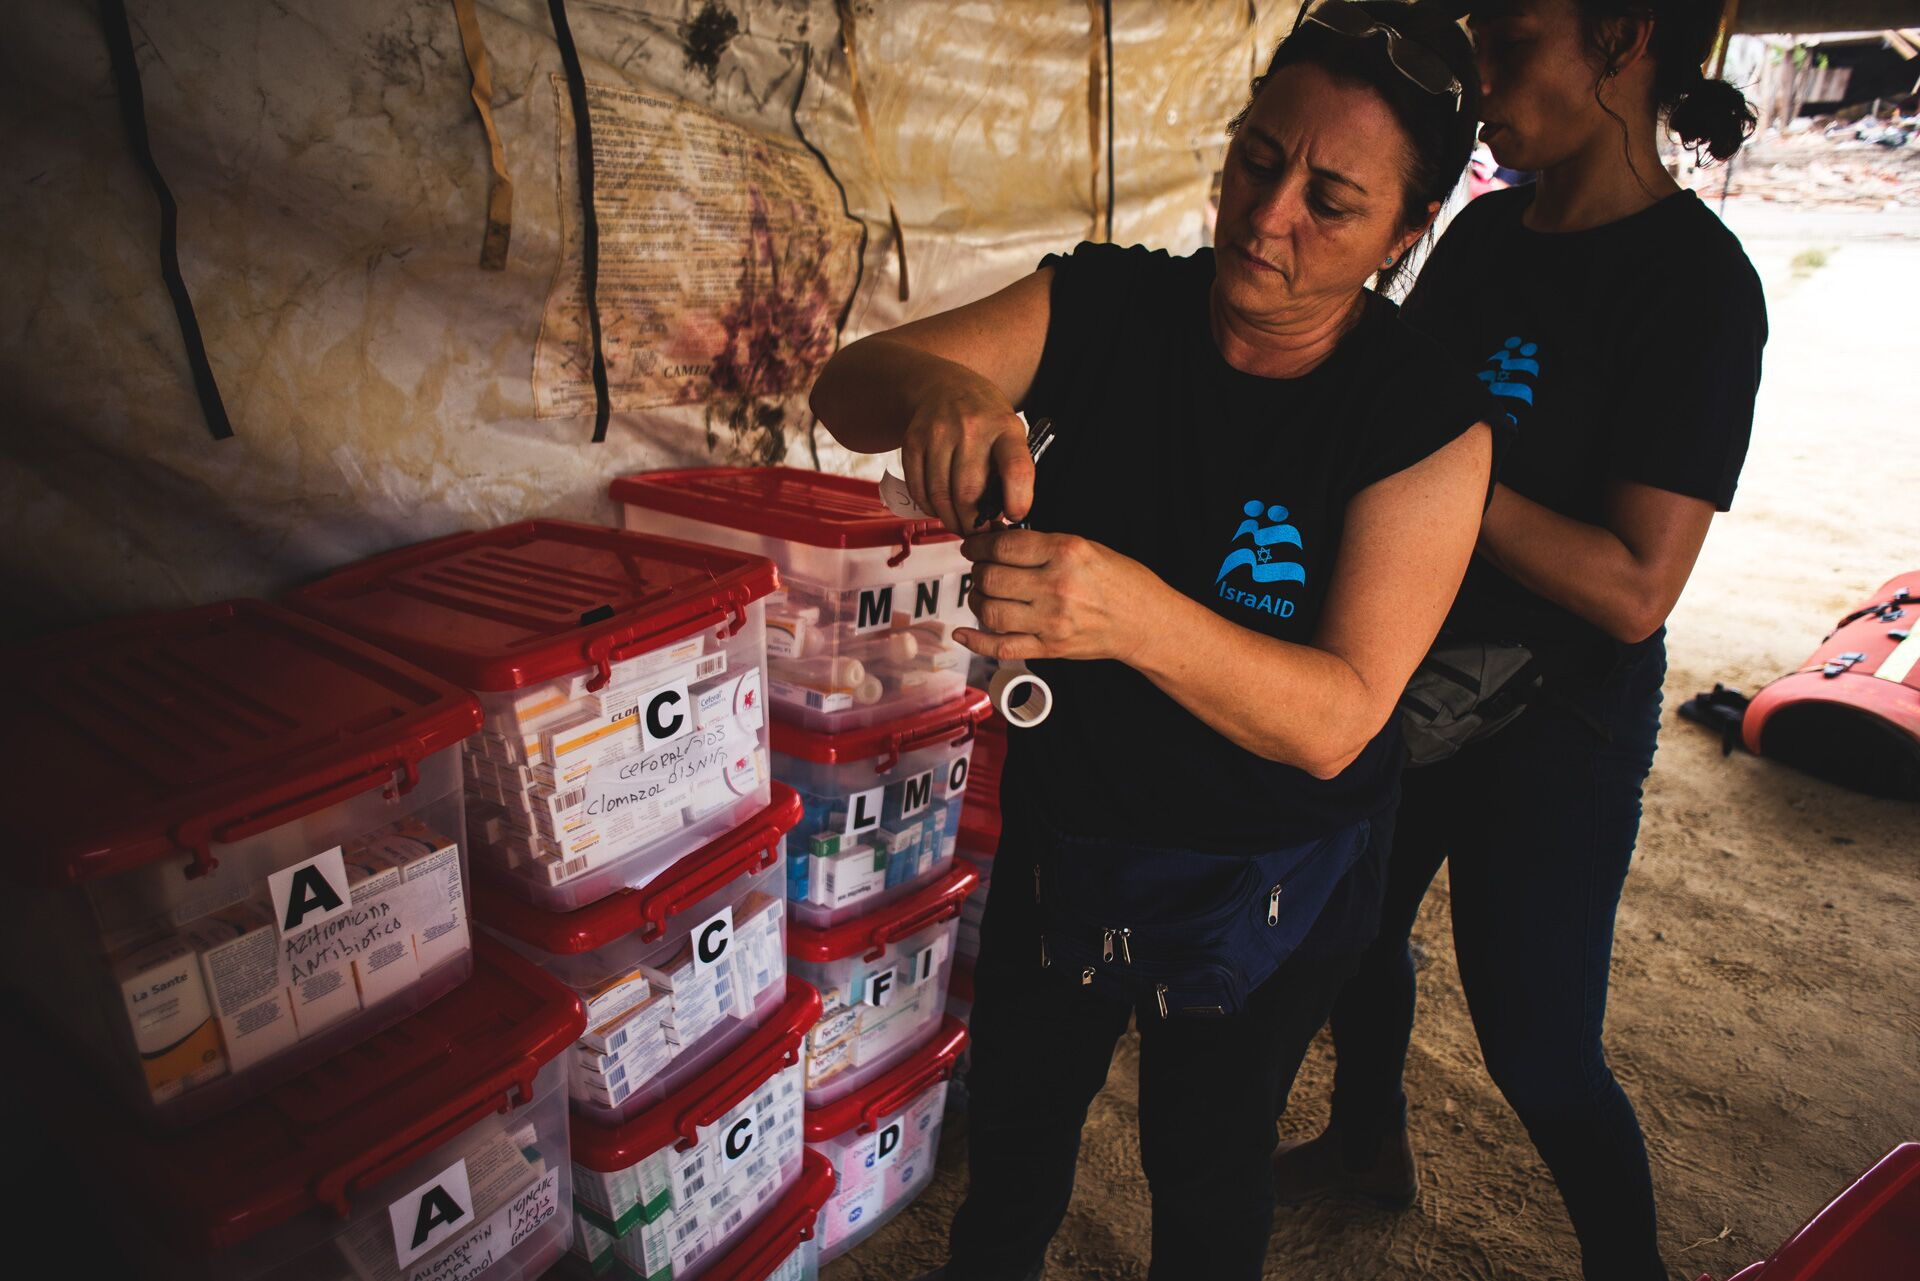 IsraAID field hospital in Canoa. Photo via IsraAID